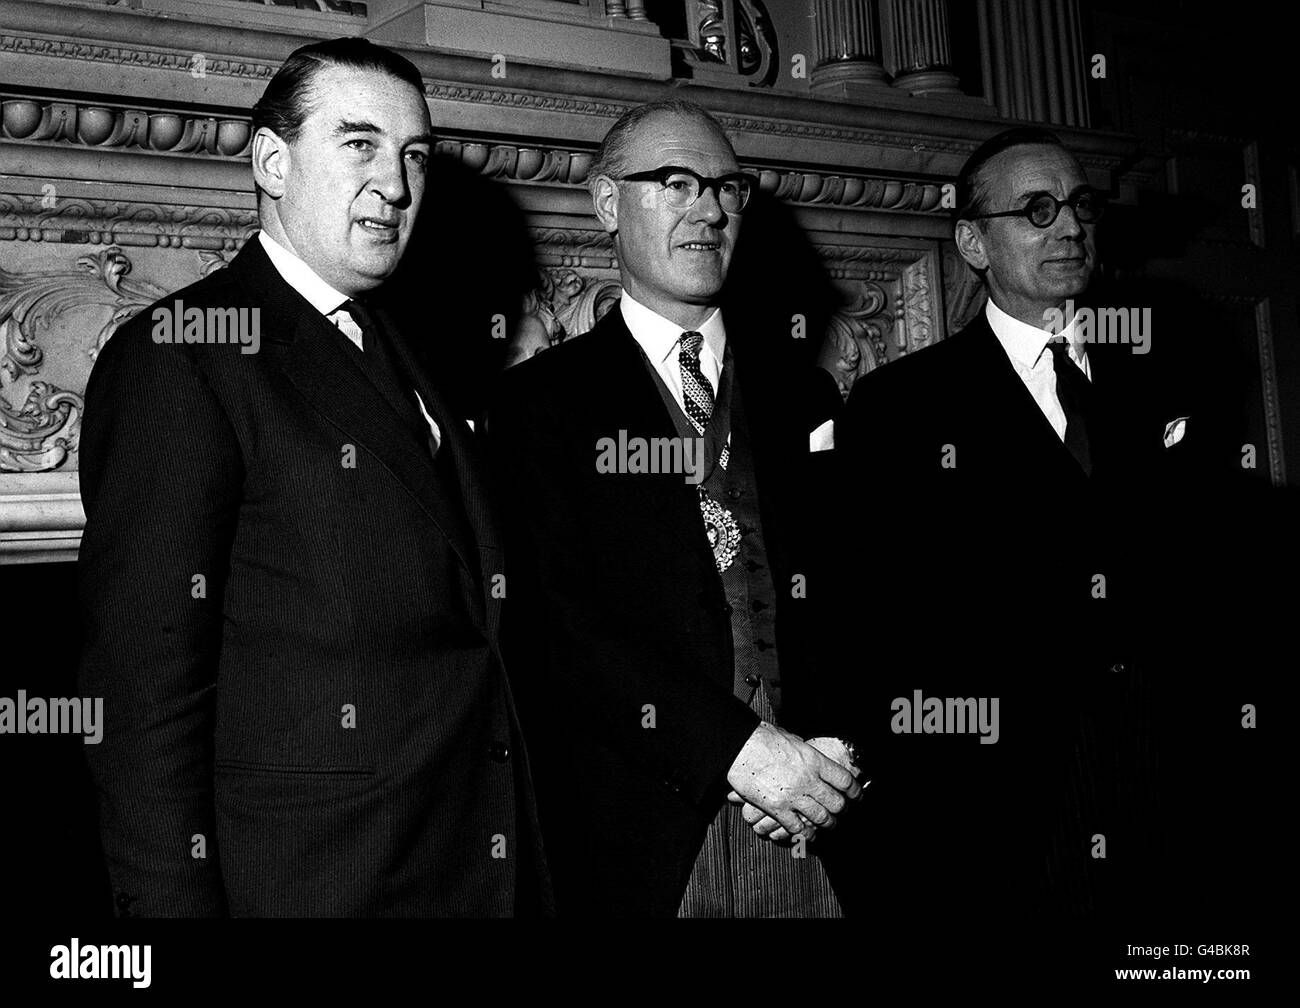 PA NEWS PHOTO 15/11/61  SIR FREDERICK HOARE (CENTRE) THE NEW LORD MAYOR OF LONDON WAS IN A HAPPY MOOD WHEN HE RECEIVED - Stock Image